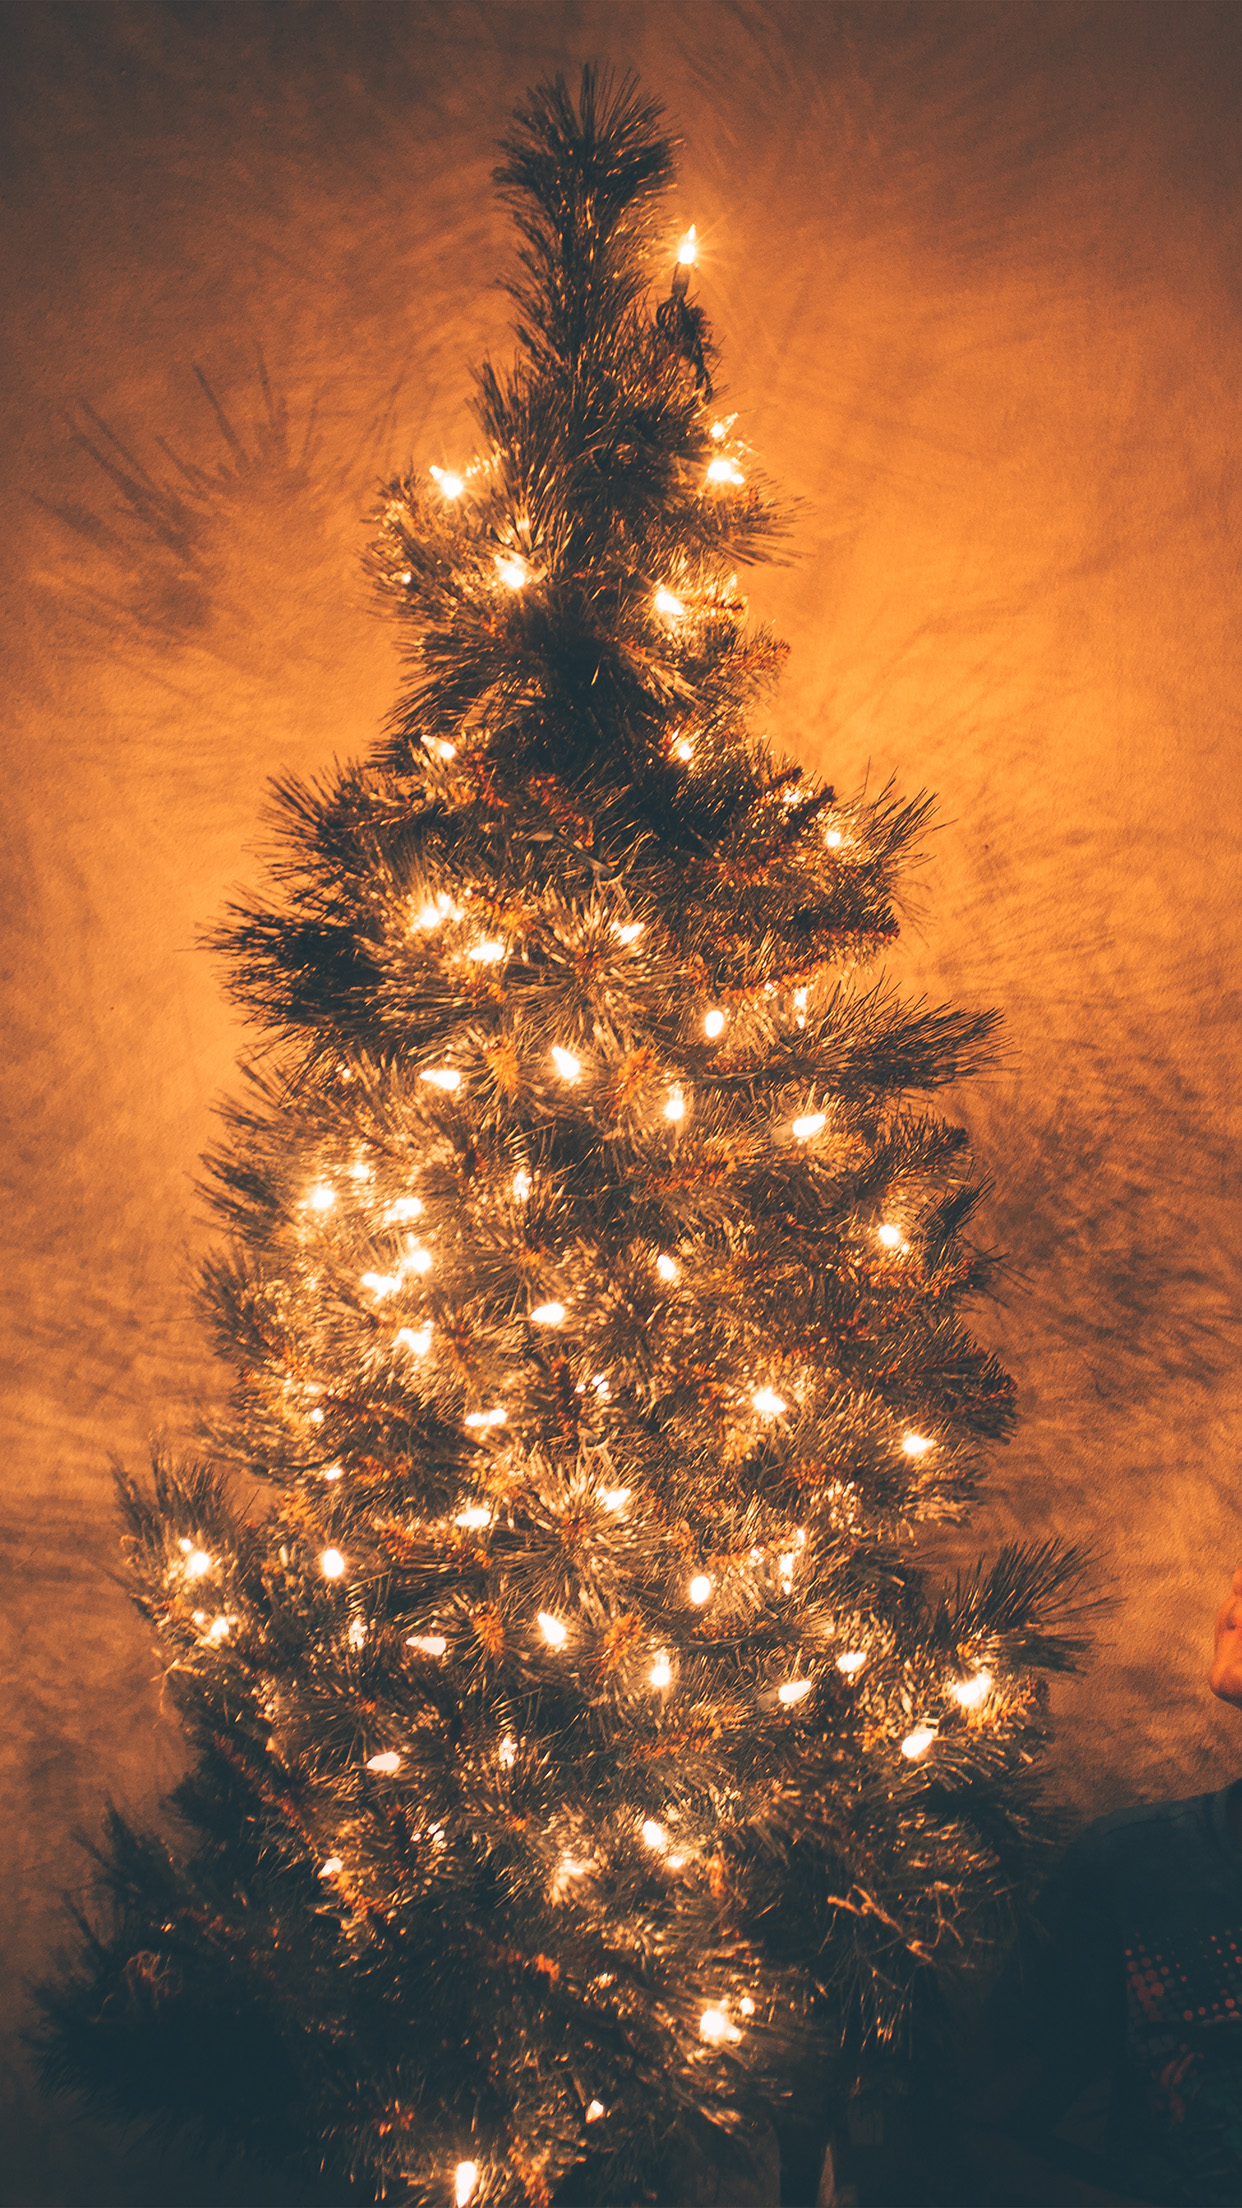 Nv79-christmas-tree-light-holiday-tree-nature-wallpaper